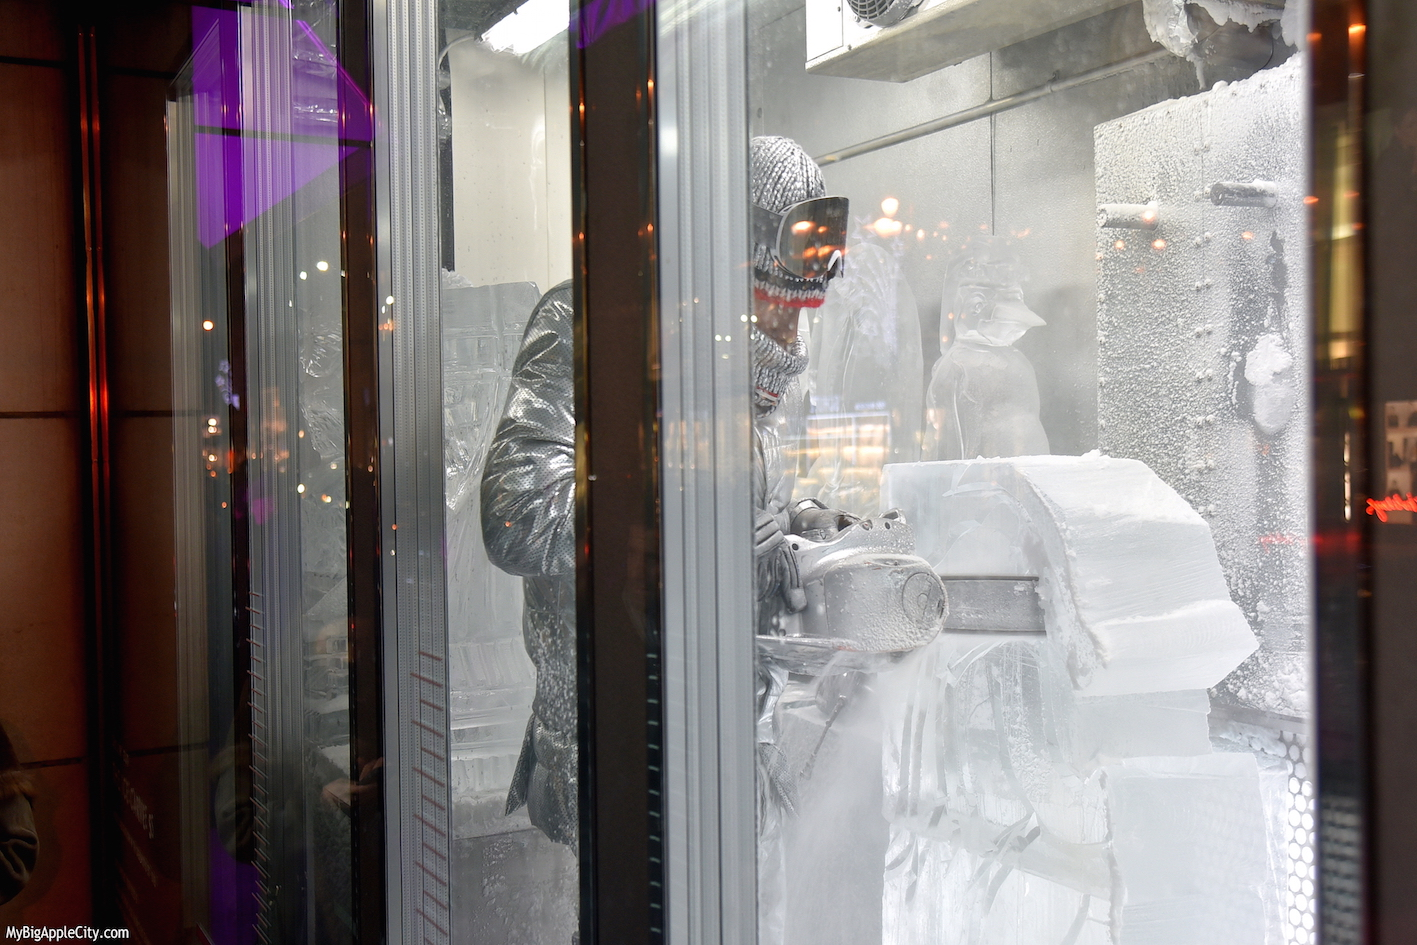 Ice-sculptor-Barneys-Holiday-windows-new-york-travelblogger-mybigapplecity